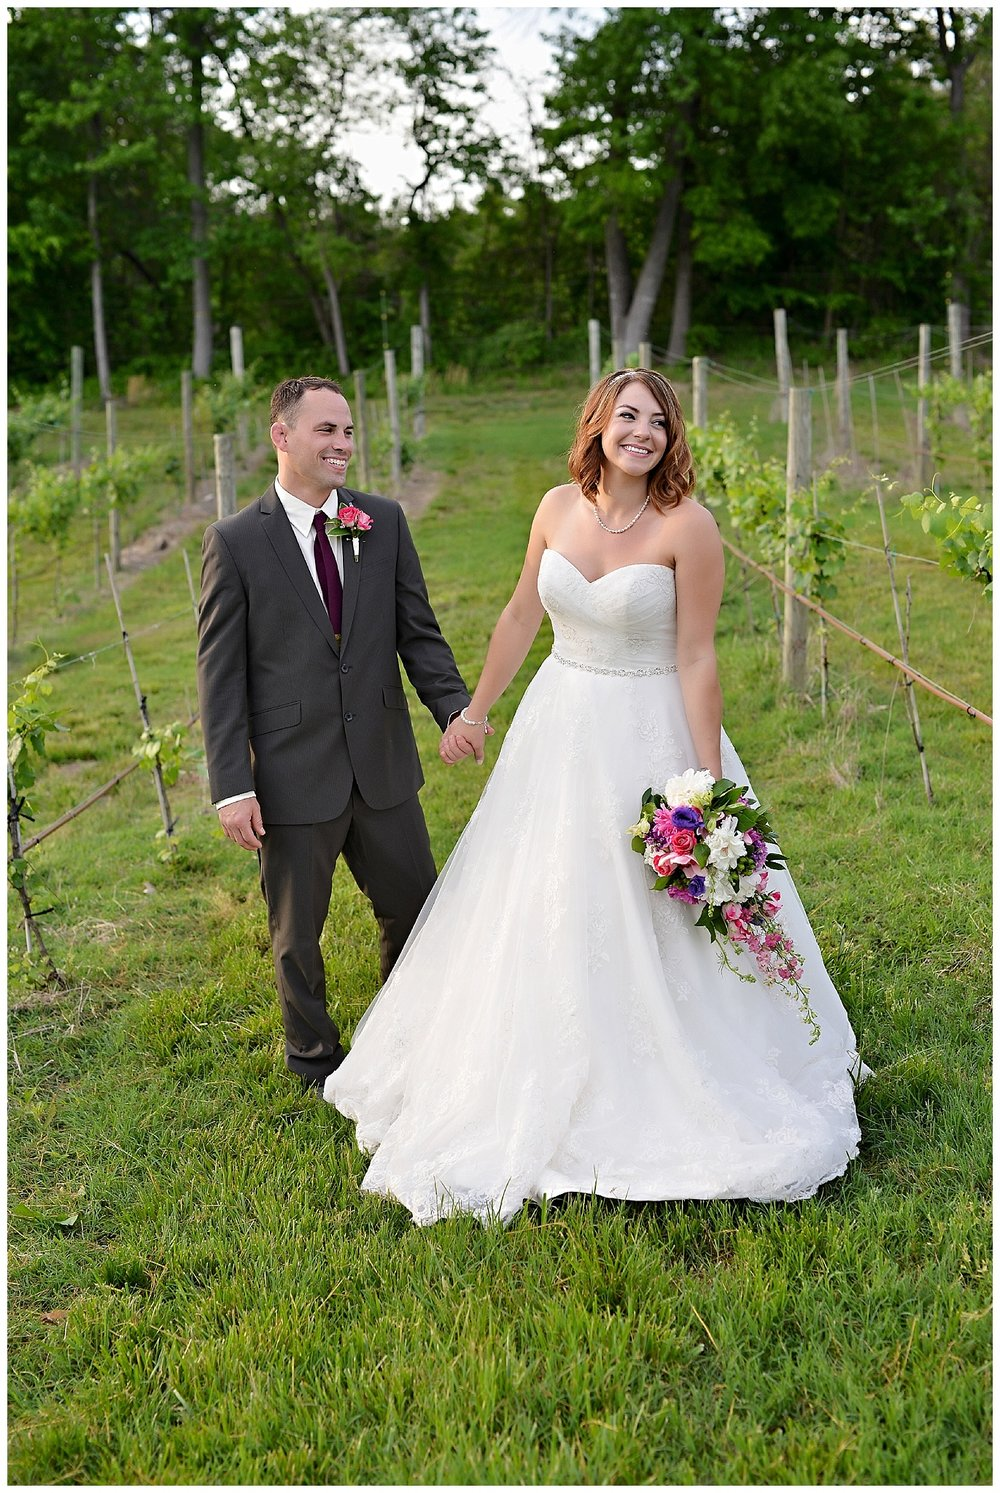 Cardinal Rose Photography, Ashton Creek Vineyard